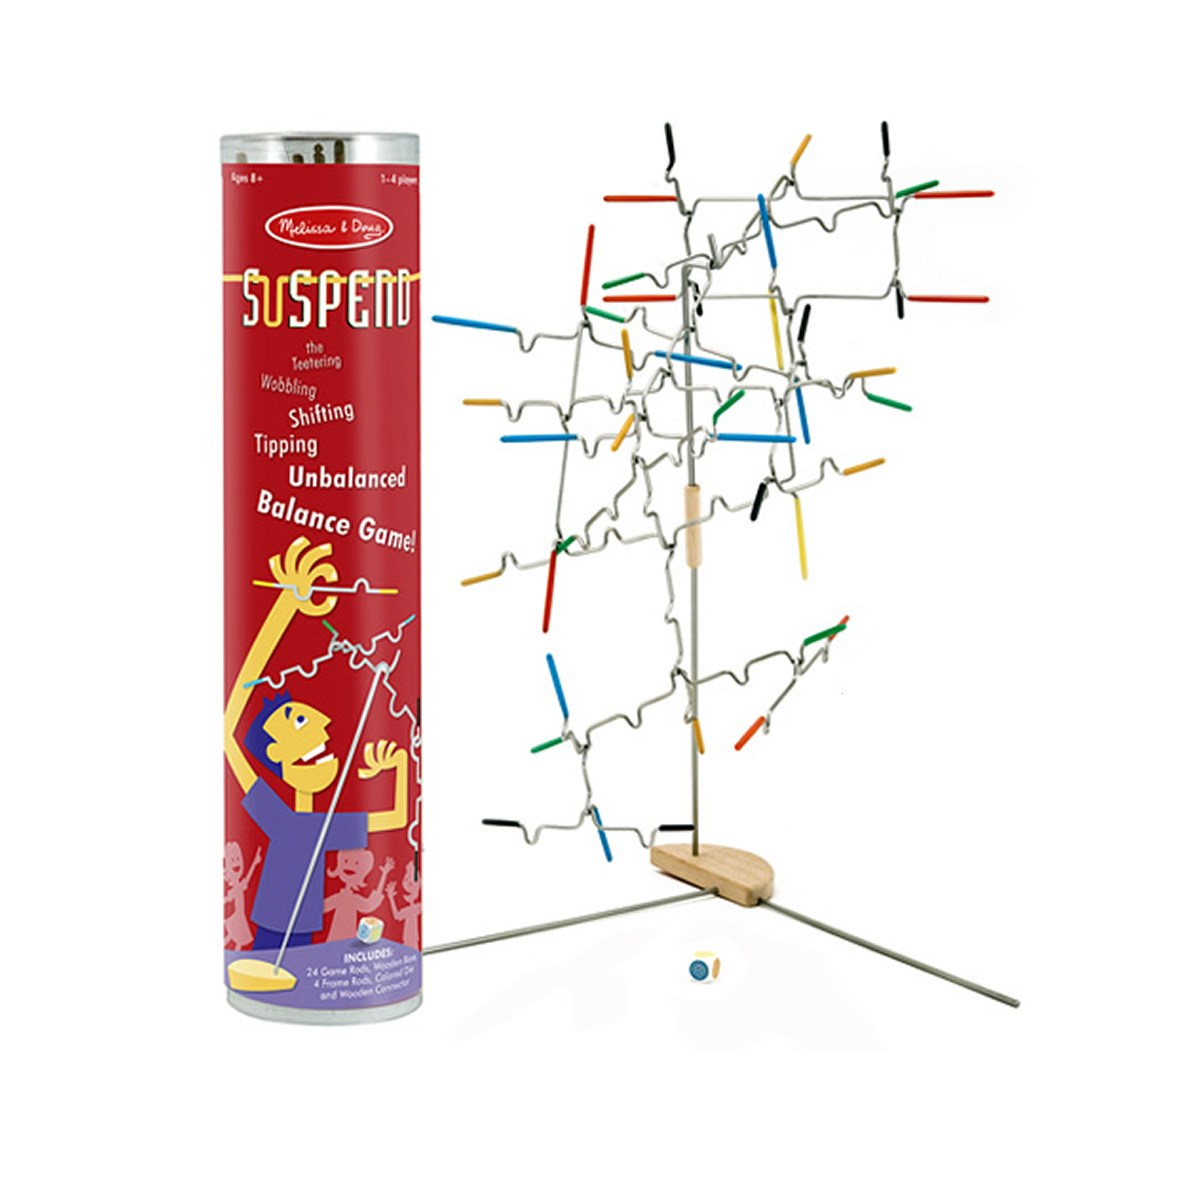 Melissa & Doug Suspend - The Hanging Balance Game